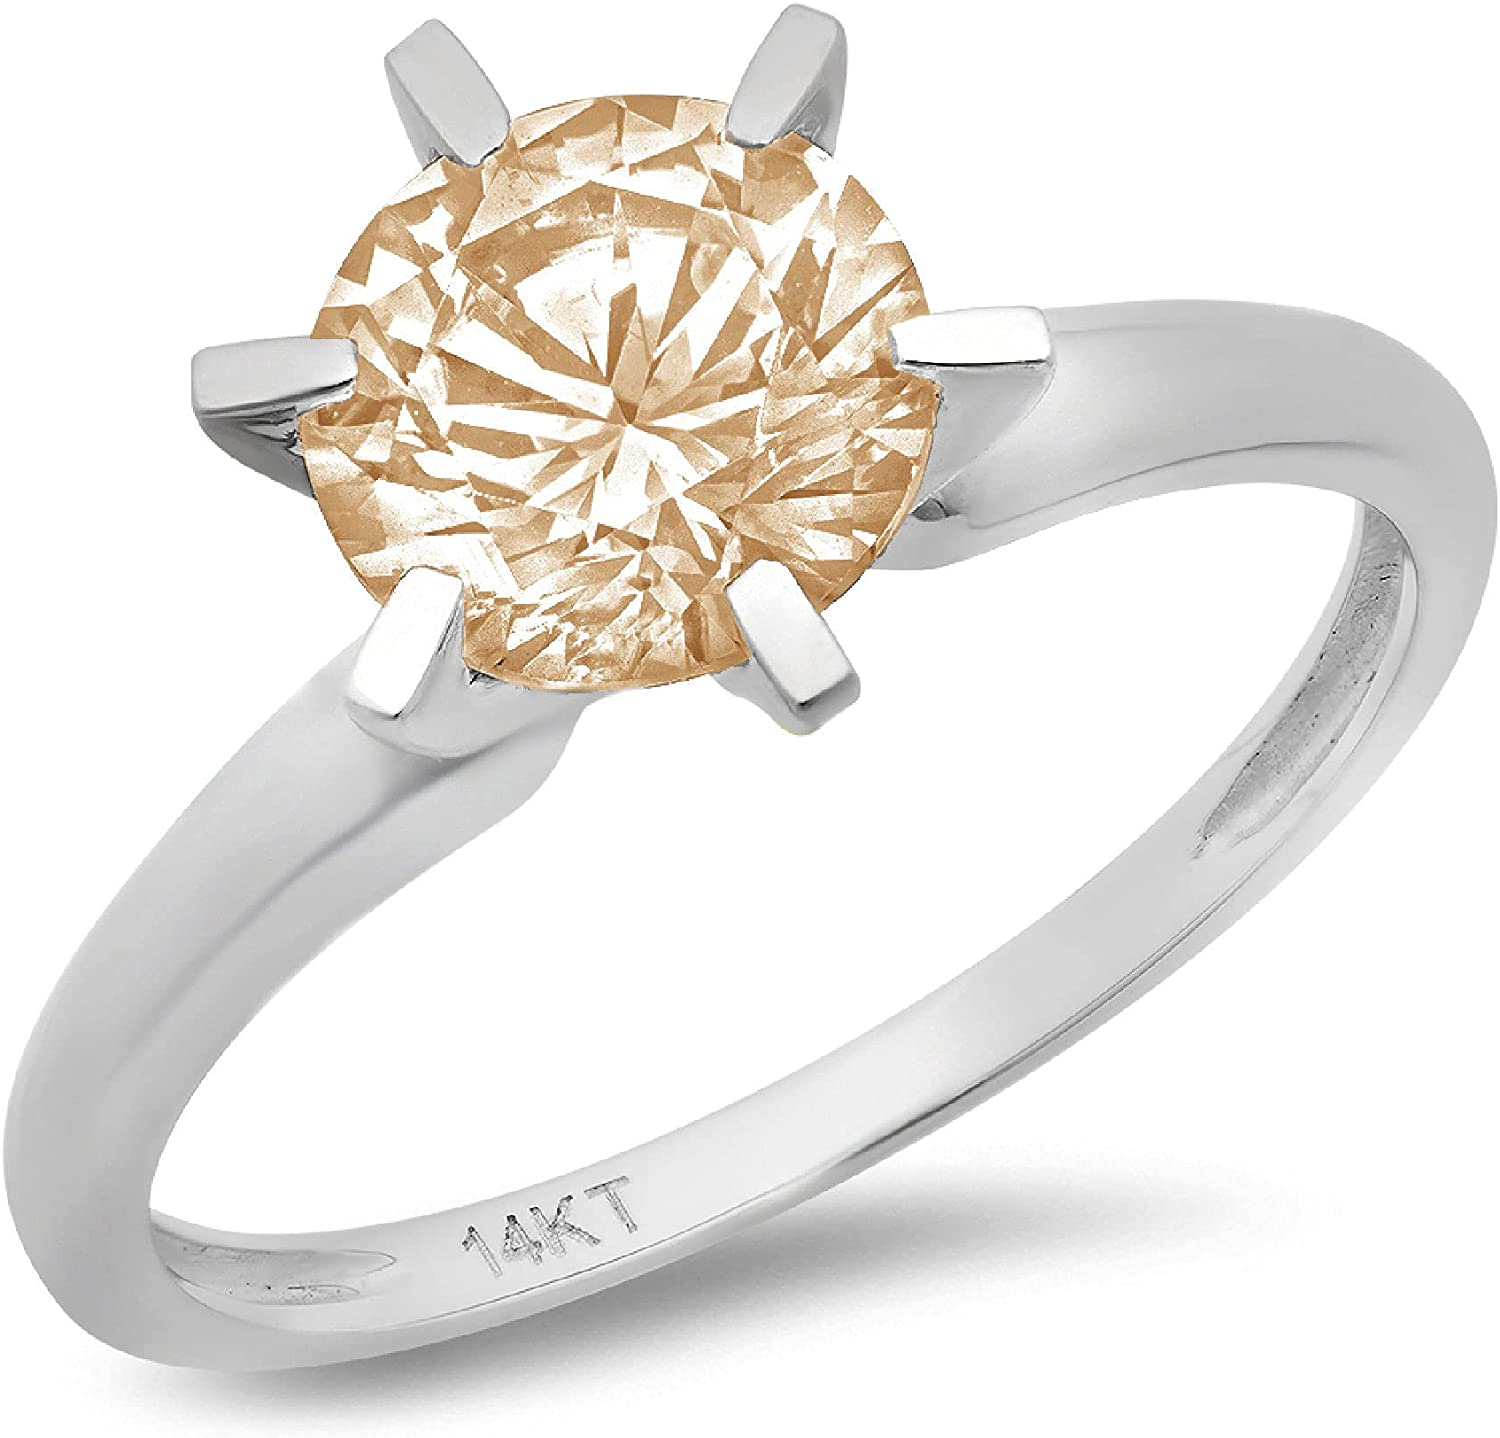 2.4ct Round Cut Solitaire Designer Genuine Natural Morganite Excellent VVS1 6-prong Engagement Wedding Bridal Promise Anniversary Ring Solid 14k White Gold for Women